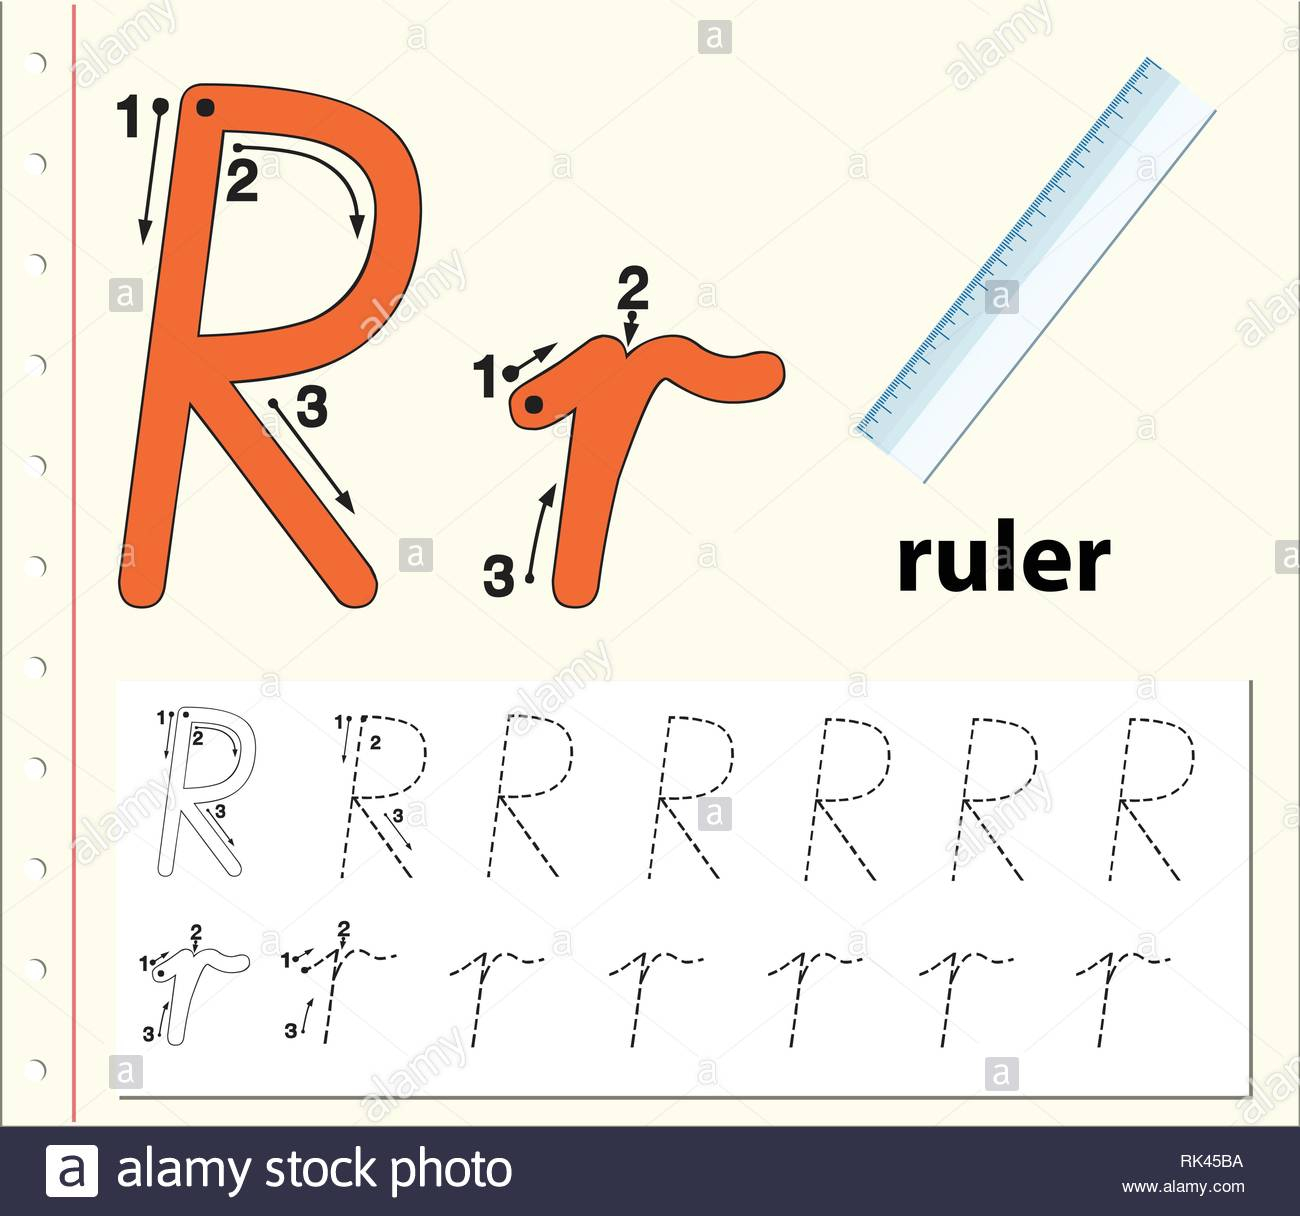 Letter R Tracing Alphabet Worksheets Illustration Stock with regard to Letter Tracing Ruler